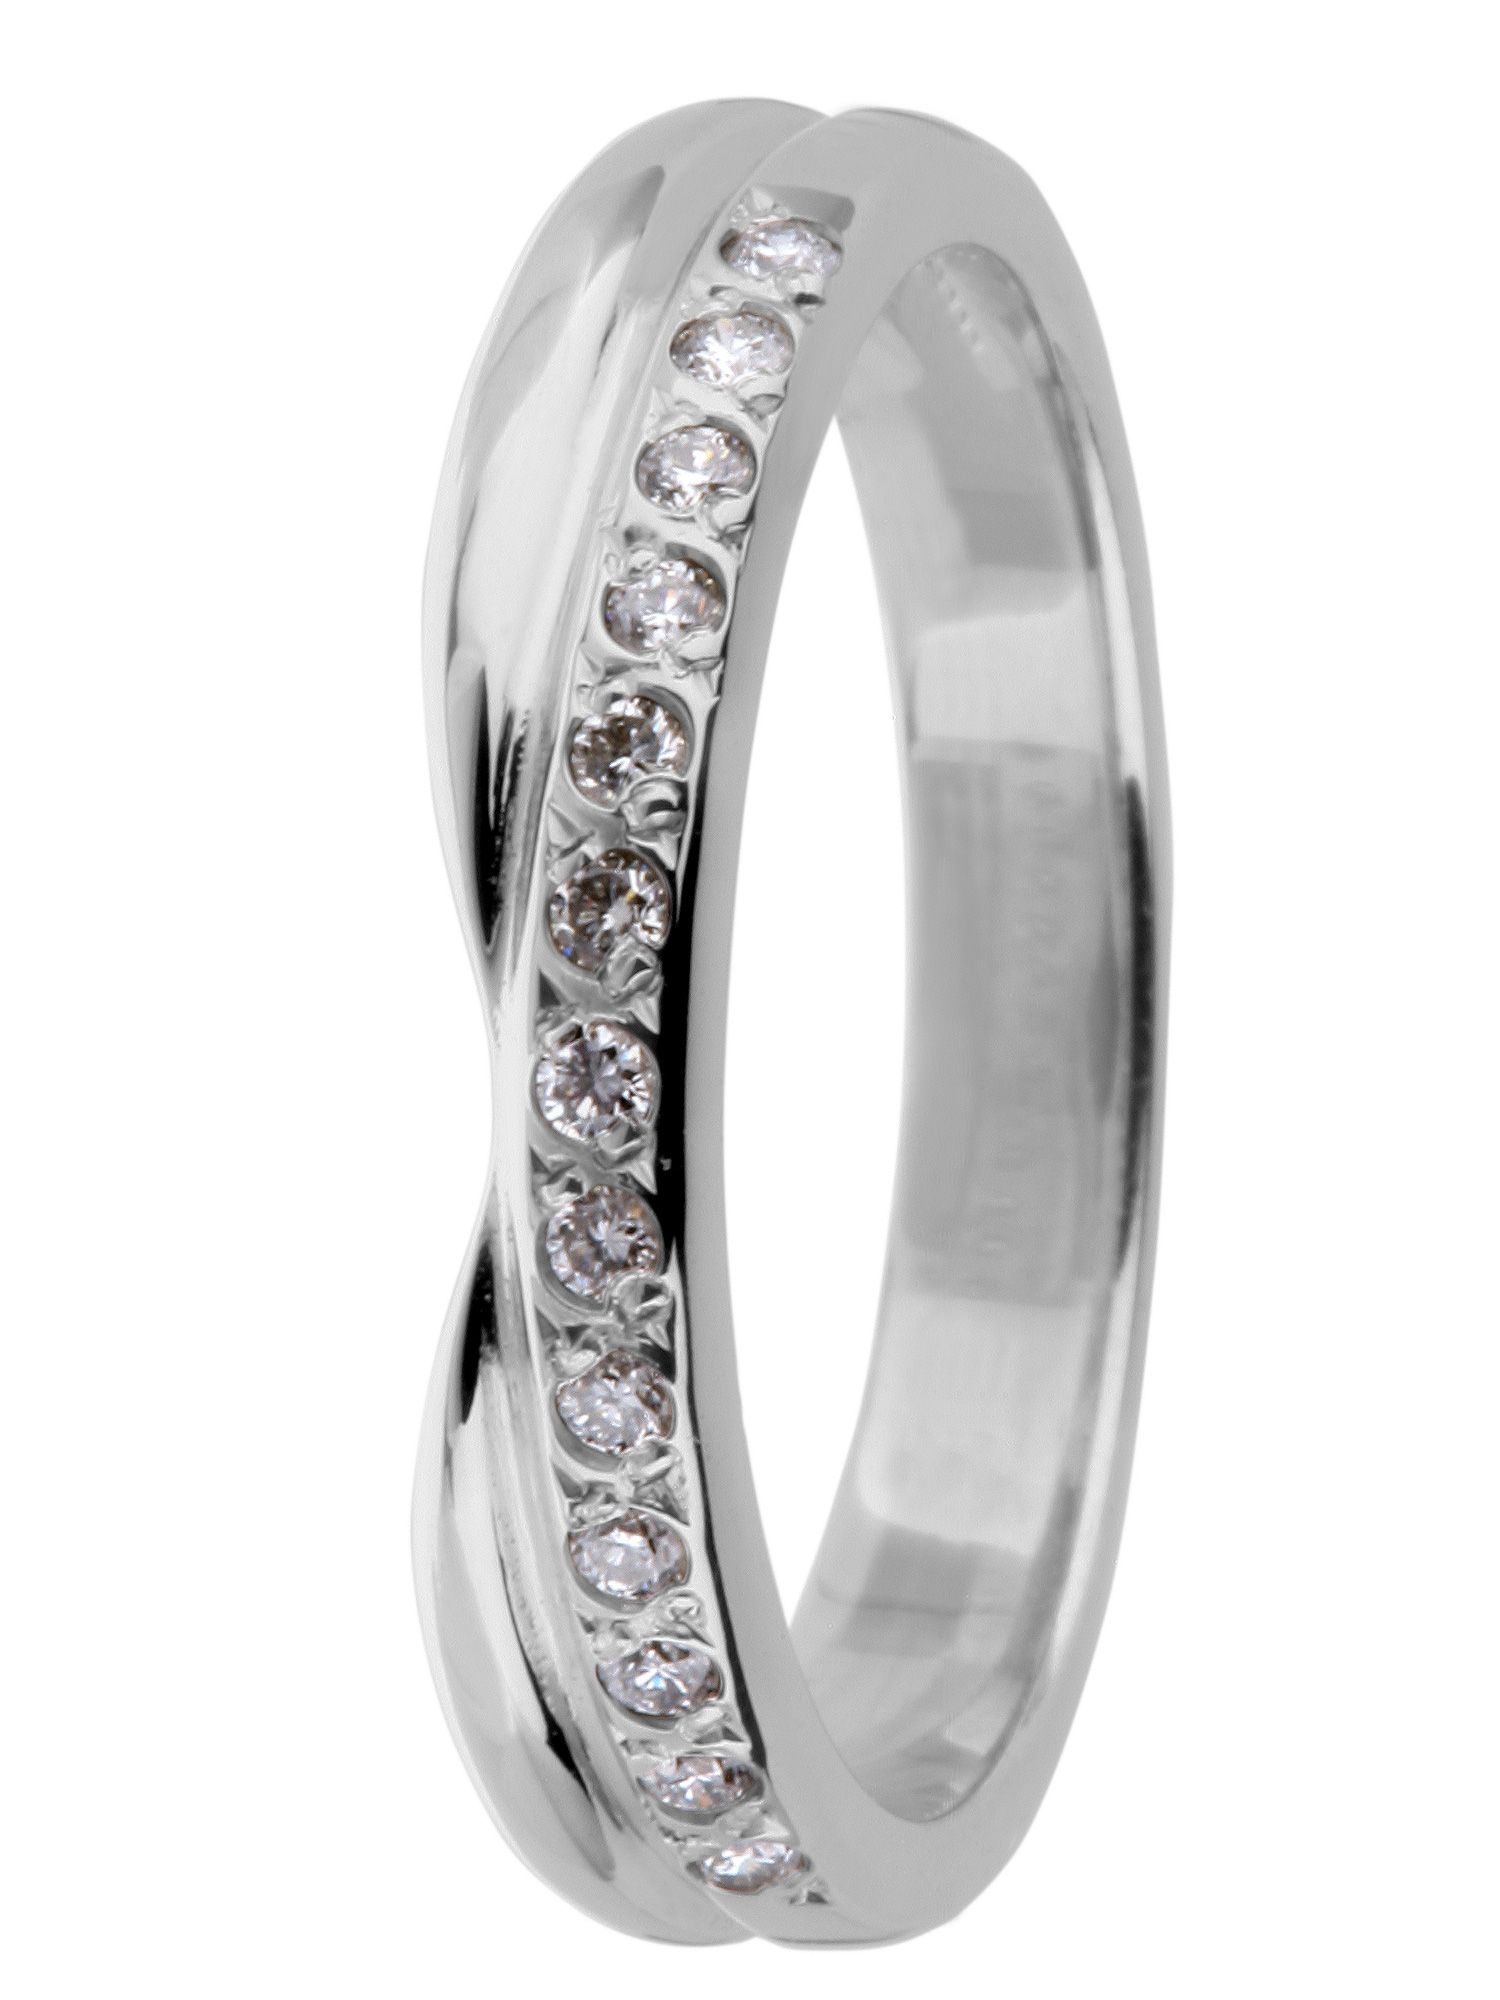 Brides 18ct gold 015ct diamond wedding ring White Gold House of